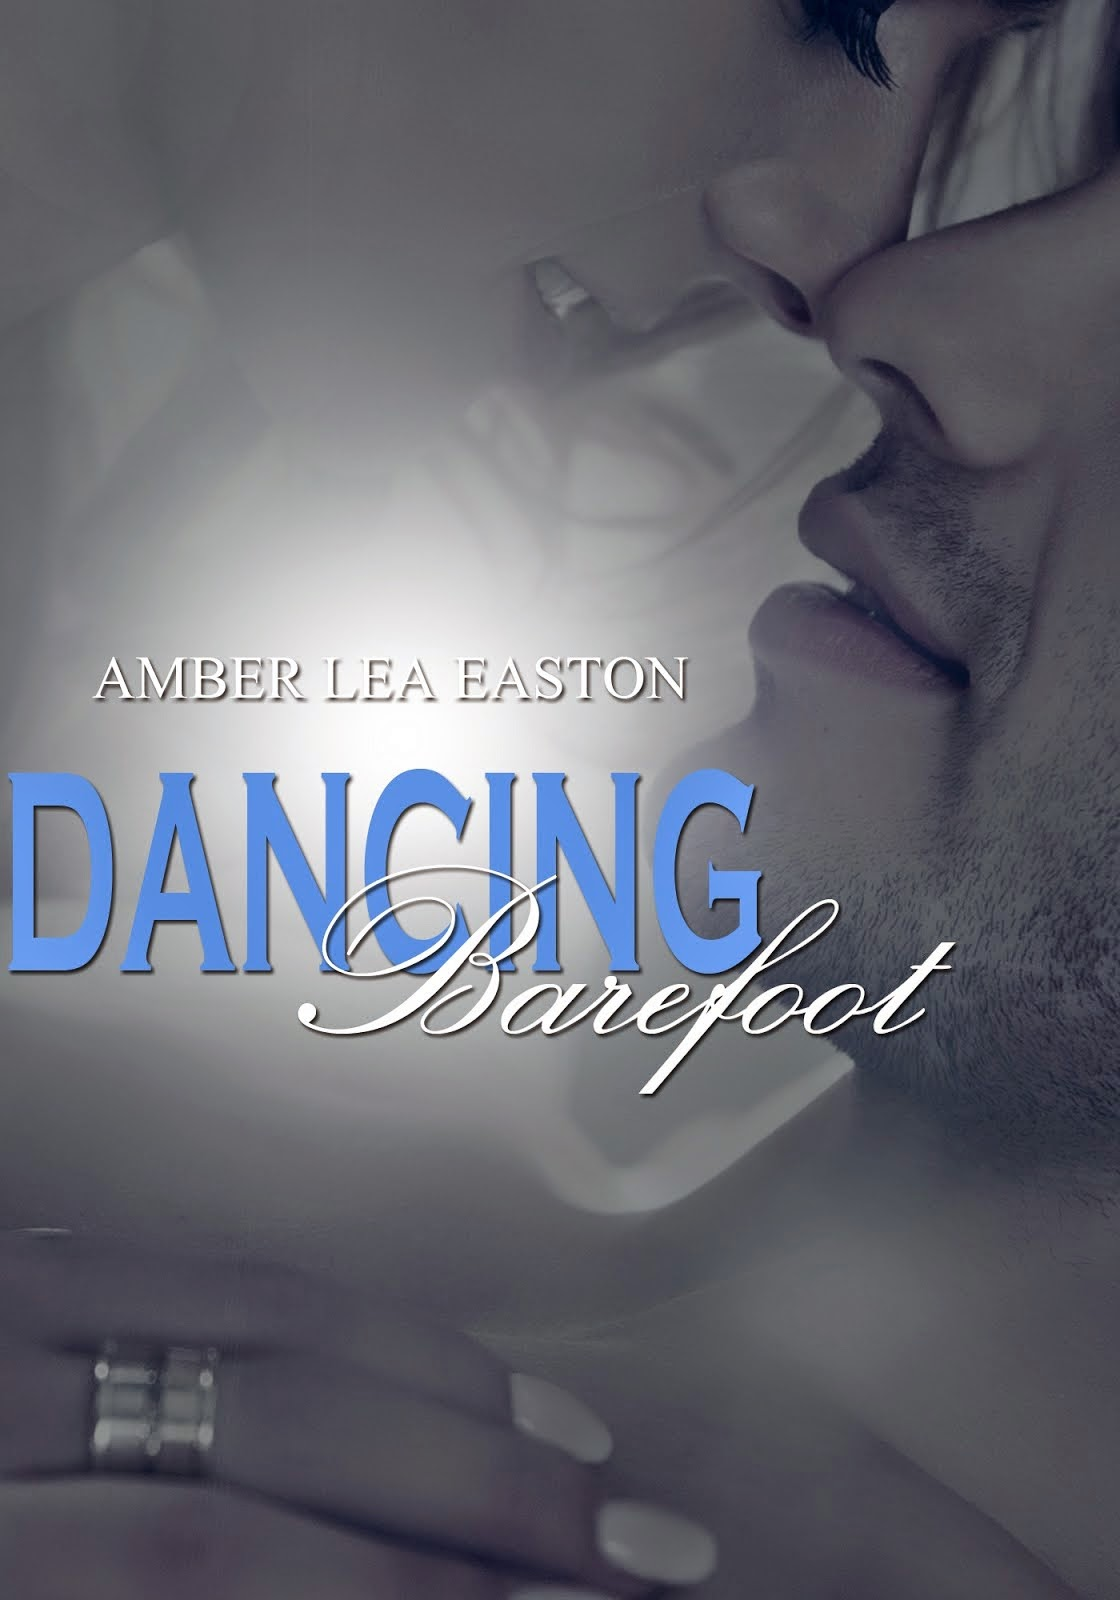 New Release! Dancing Barefoot